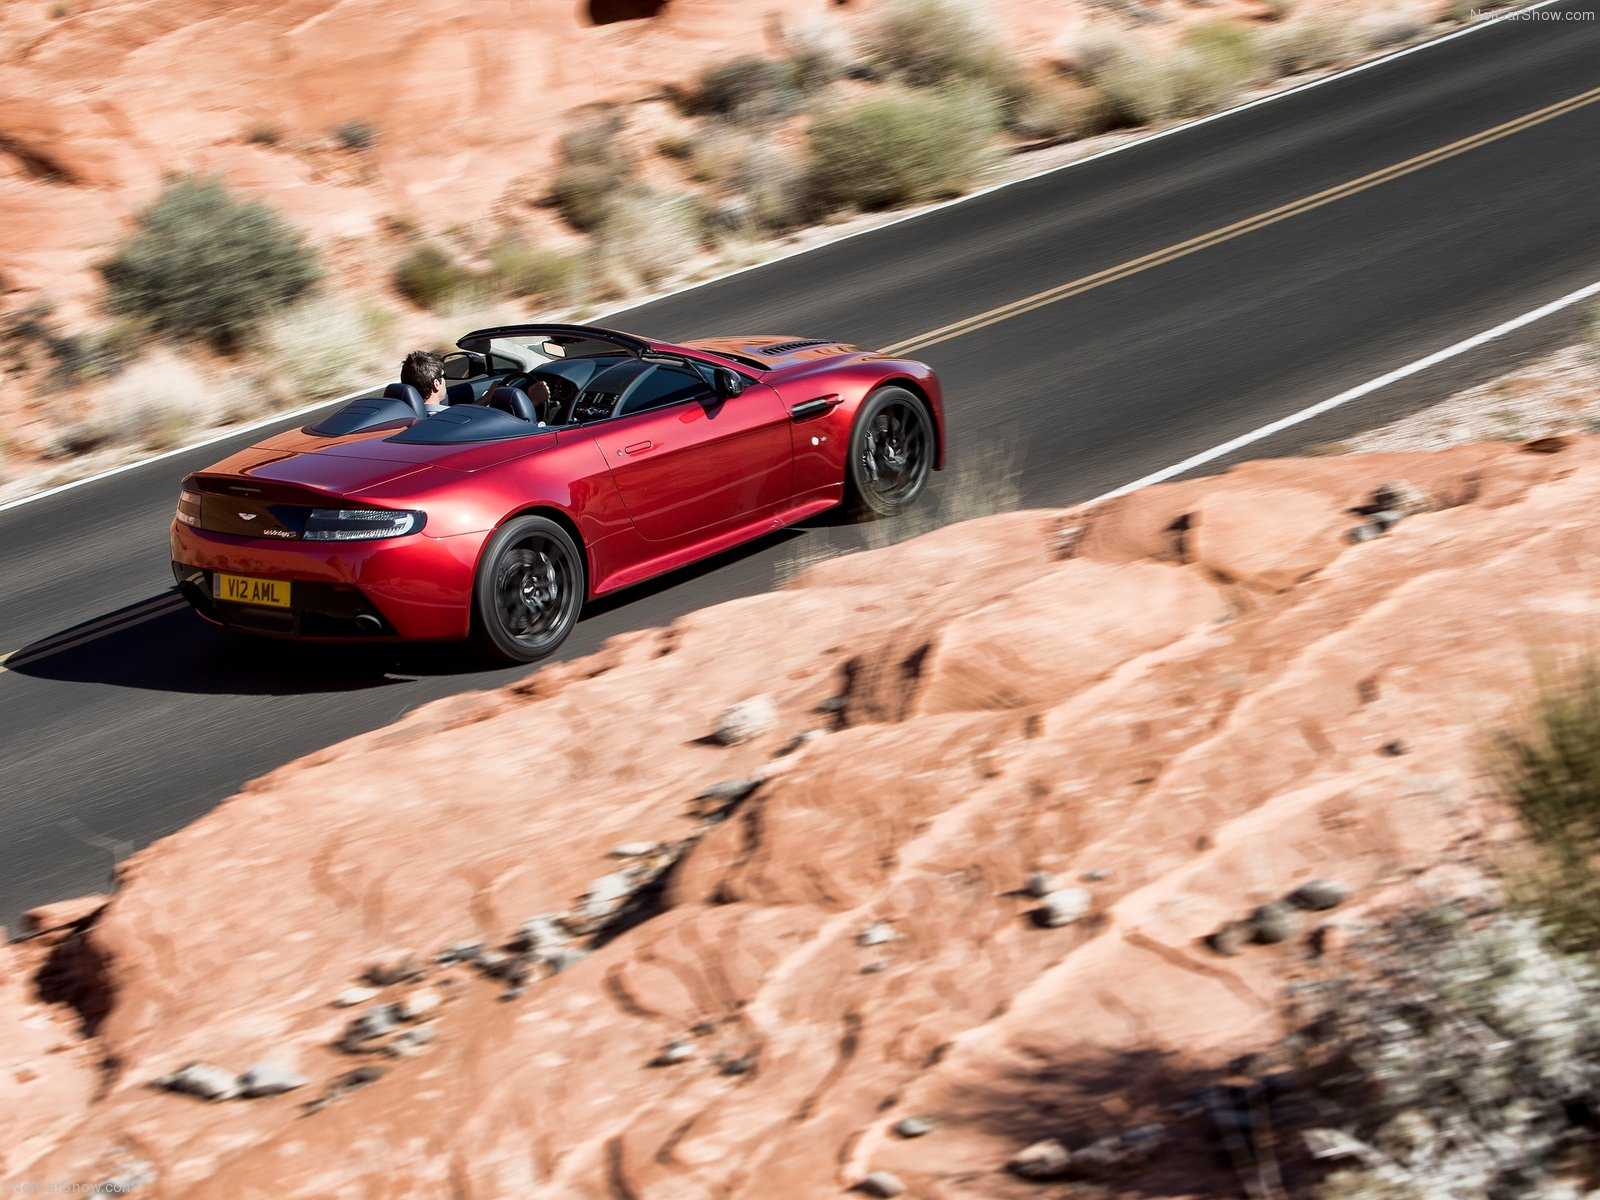 Aston Martin V12 Vantage S Roadster photo 131705